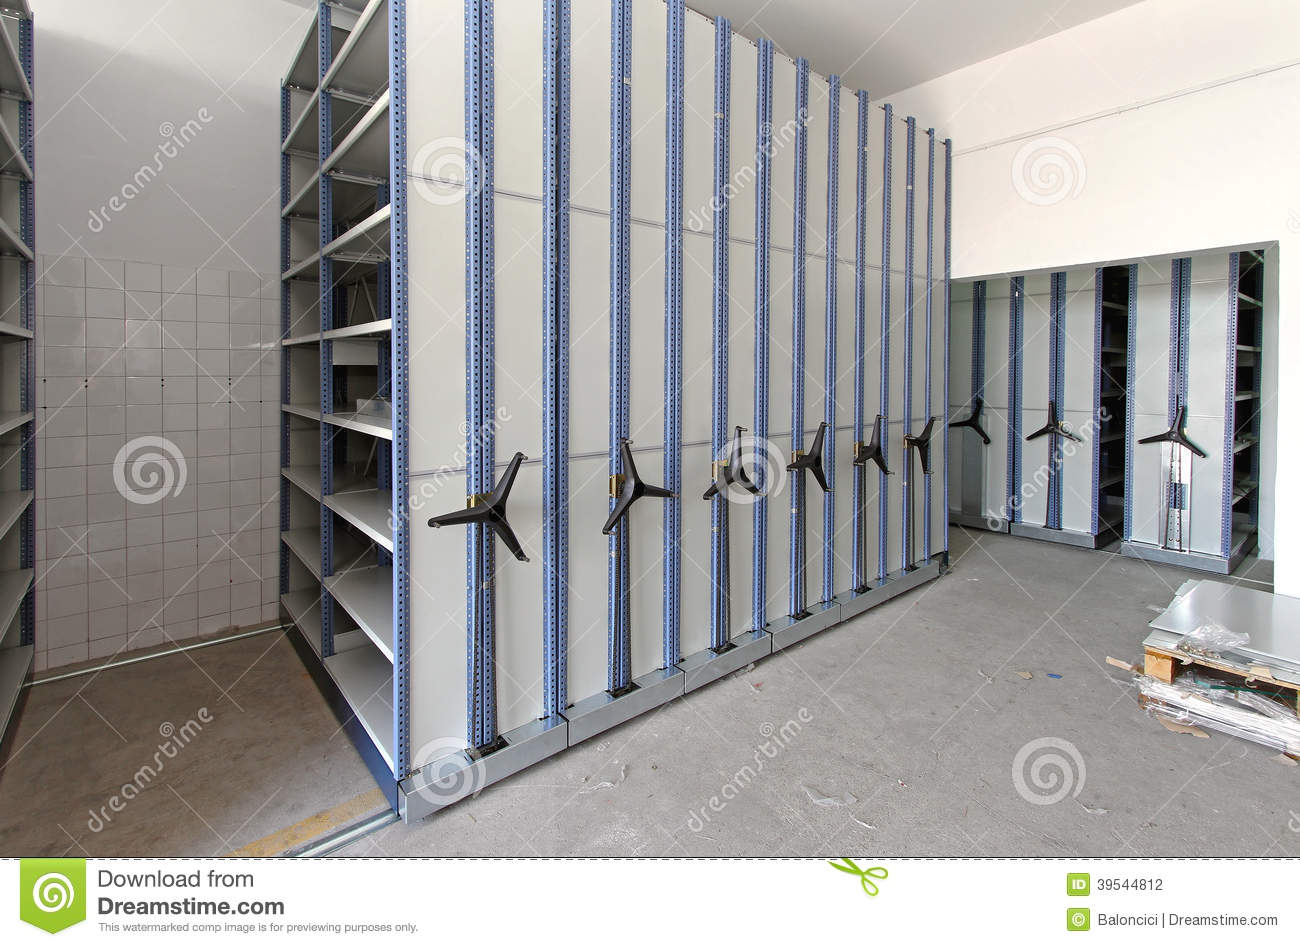 Roller Racking System Stock Photo Image 39544812